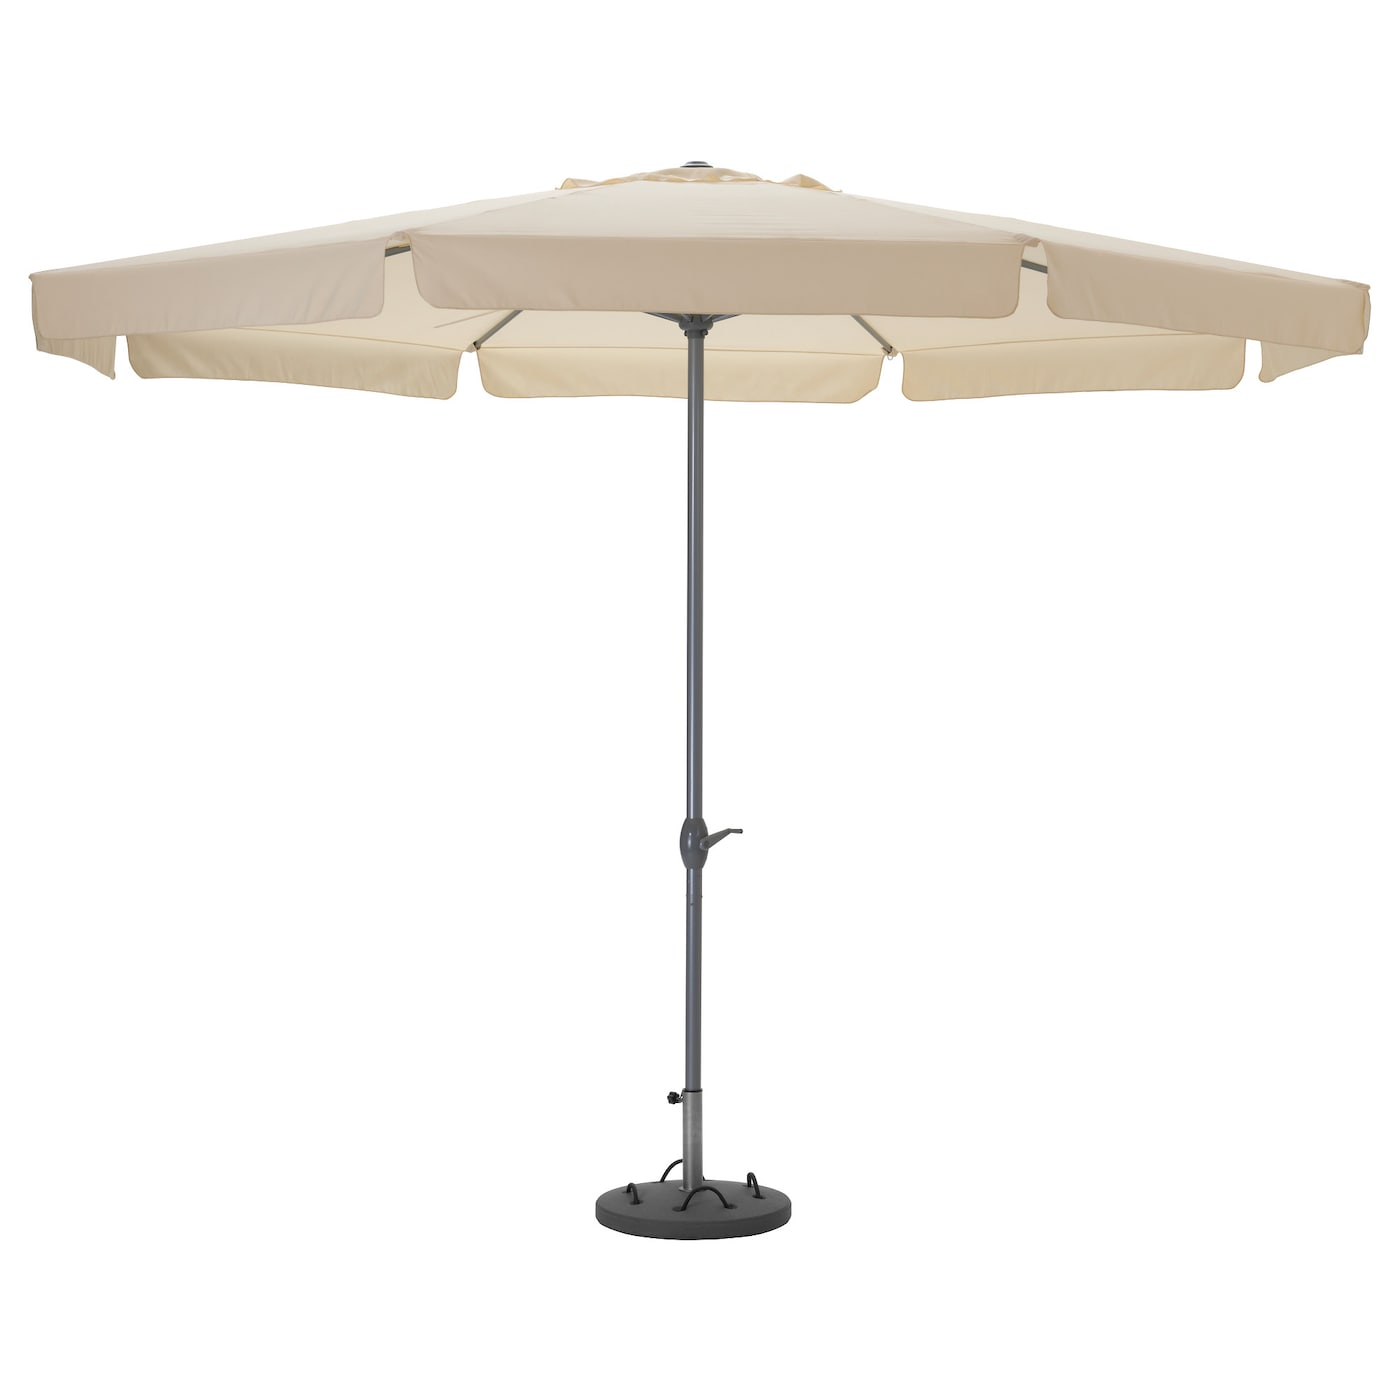 Ikea LÖkÖ LjusterÖ Parasol With Base The Is Easy To Open Or Close By